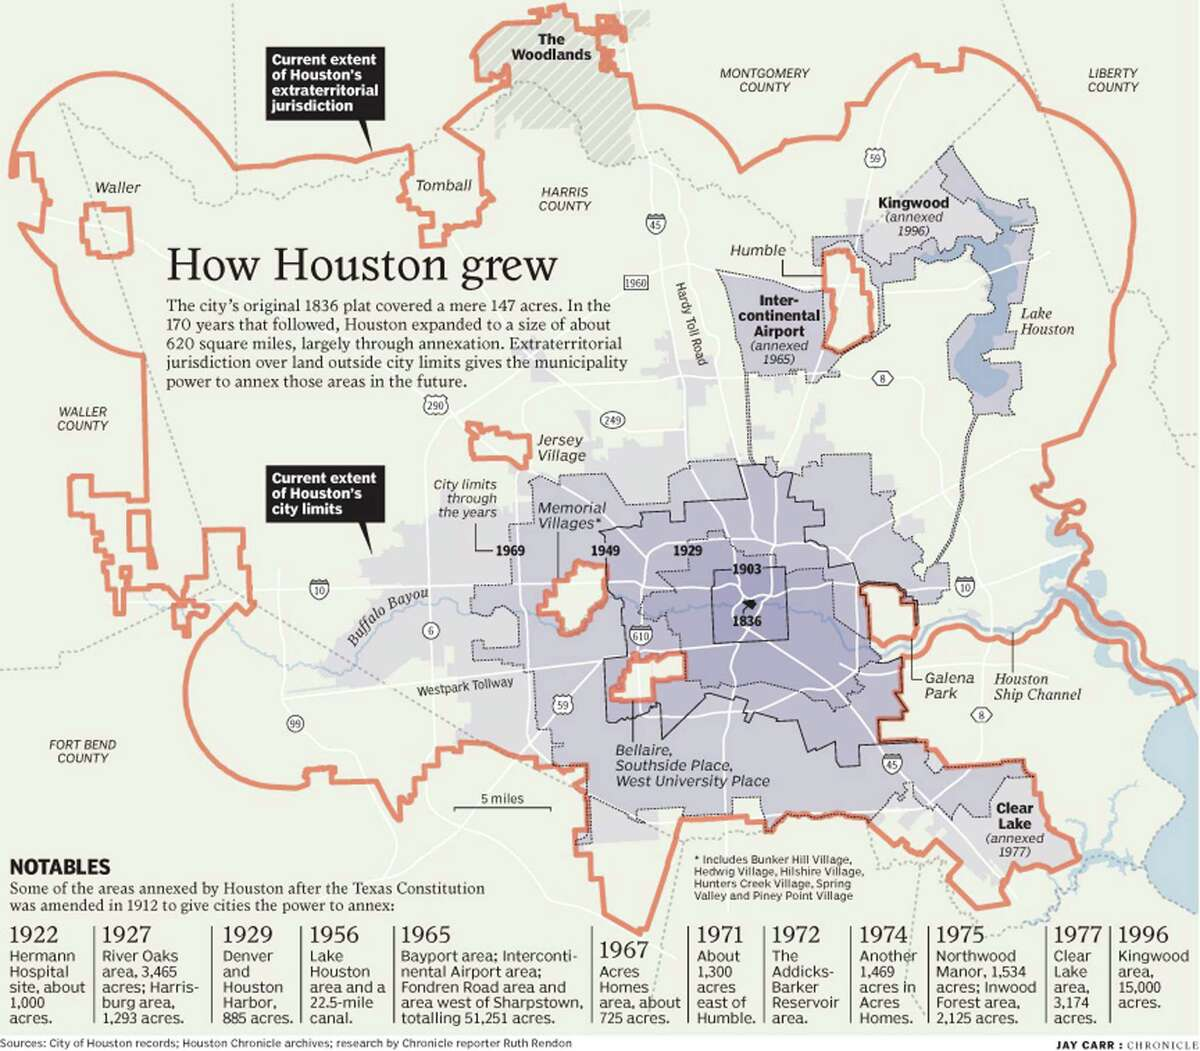 How Houston Grew - graphic map published October 8, 2006. The city's original 1836 plat covered a mere 147 acres. In the 170 years that followed, Houston expanded to a size of about 620 square miles, largely through annexation. Extraterritorial jurisdiction over land outside city limits gives the municipality power to annex those areas in the future.